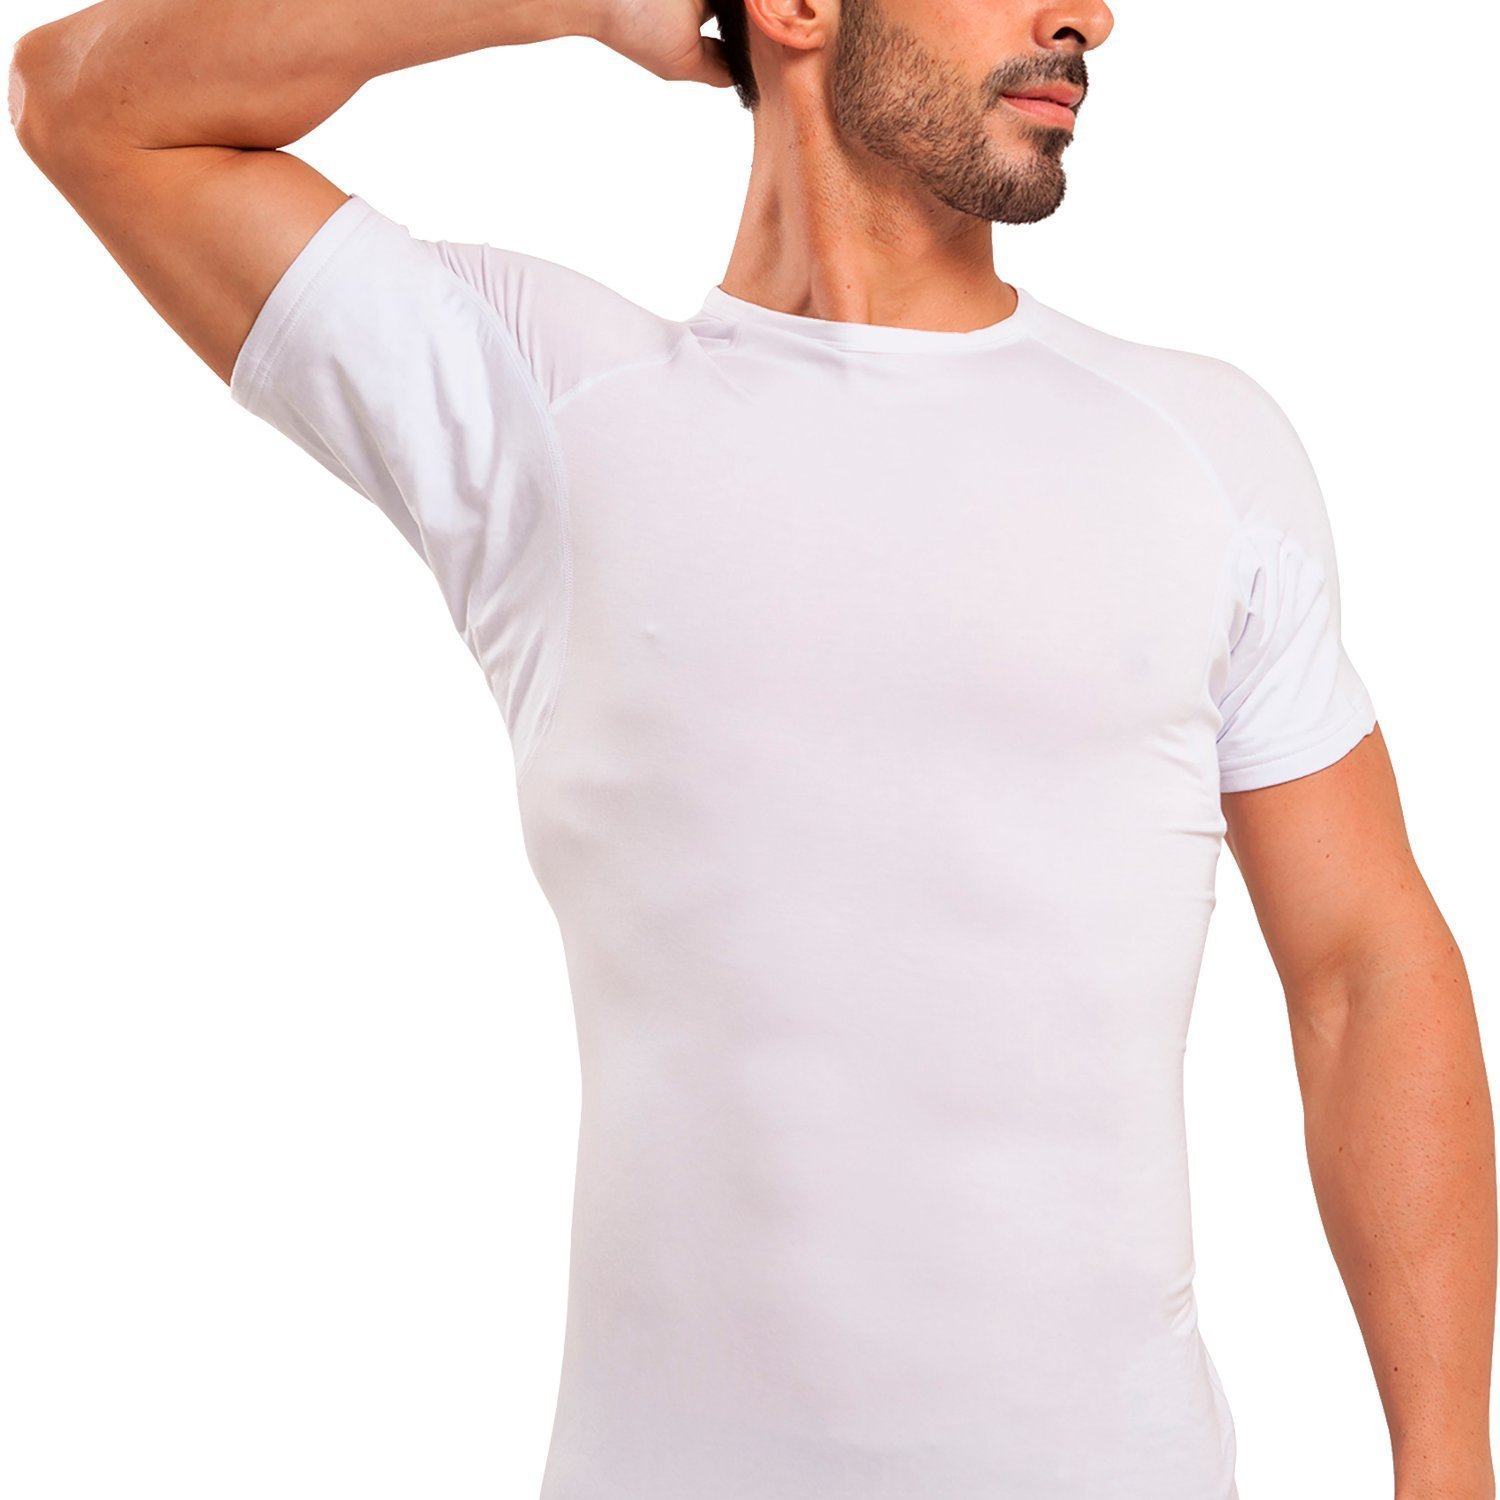 Ejis Sweatproof Undershirts Men Crew Neck Micro Modal Odor Fighting Silver (X-Large, White)